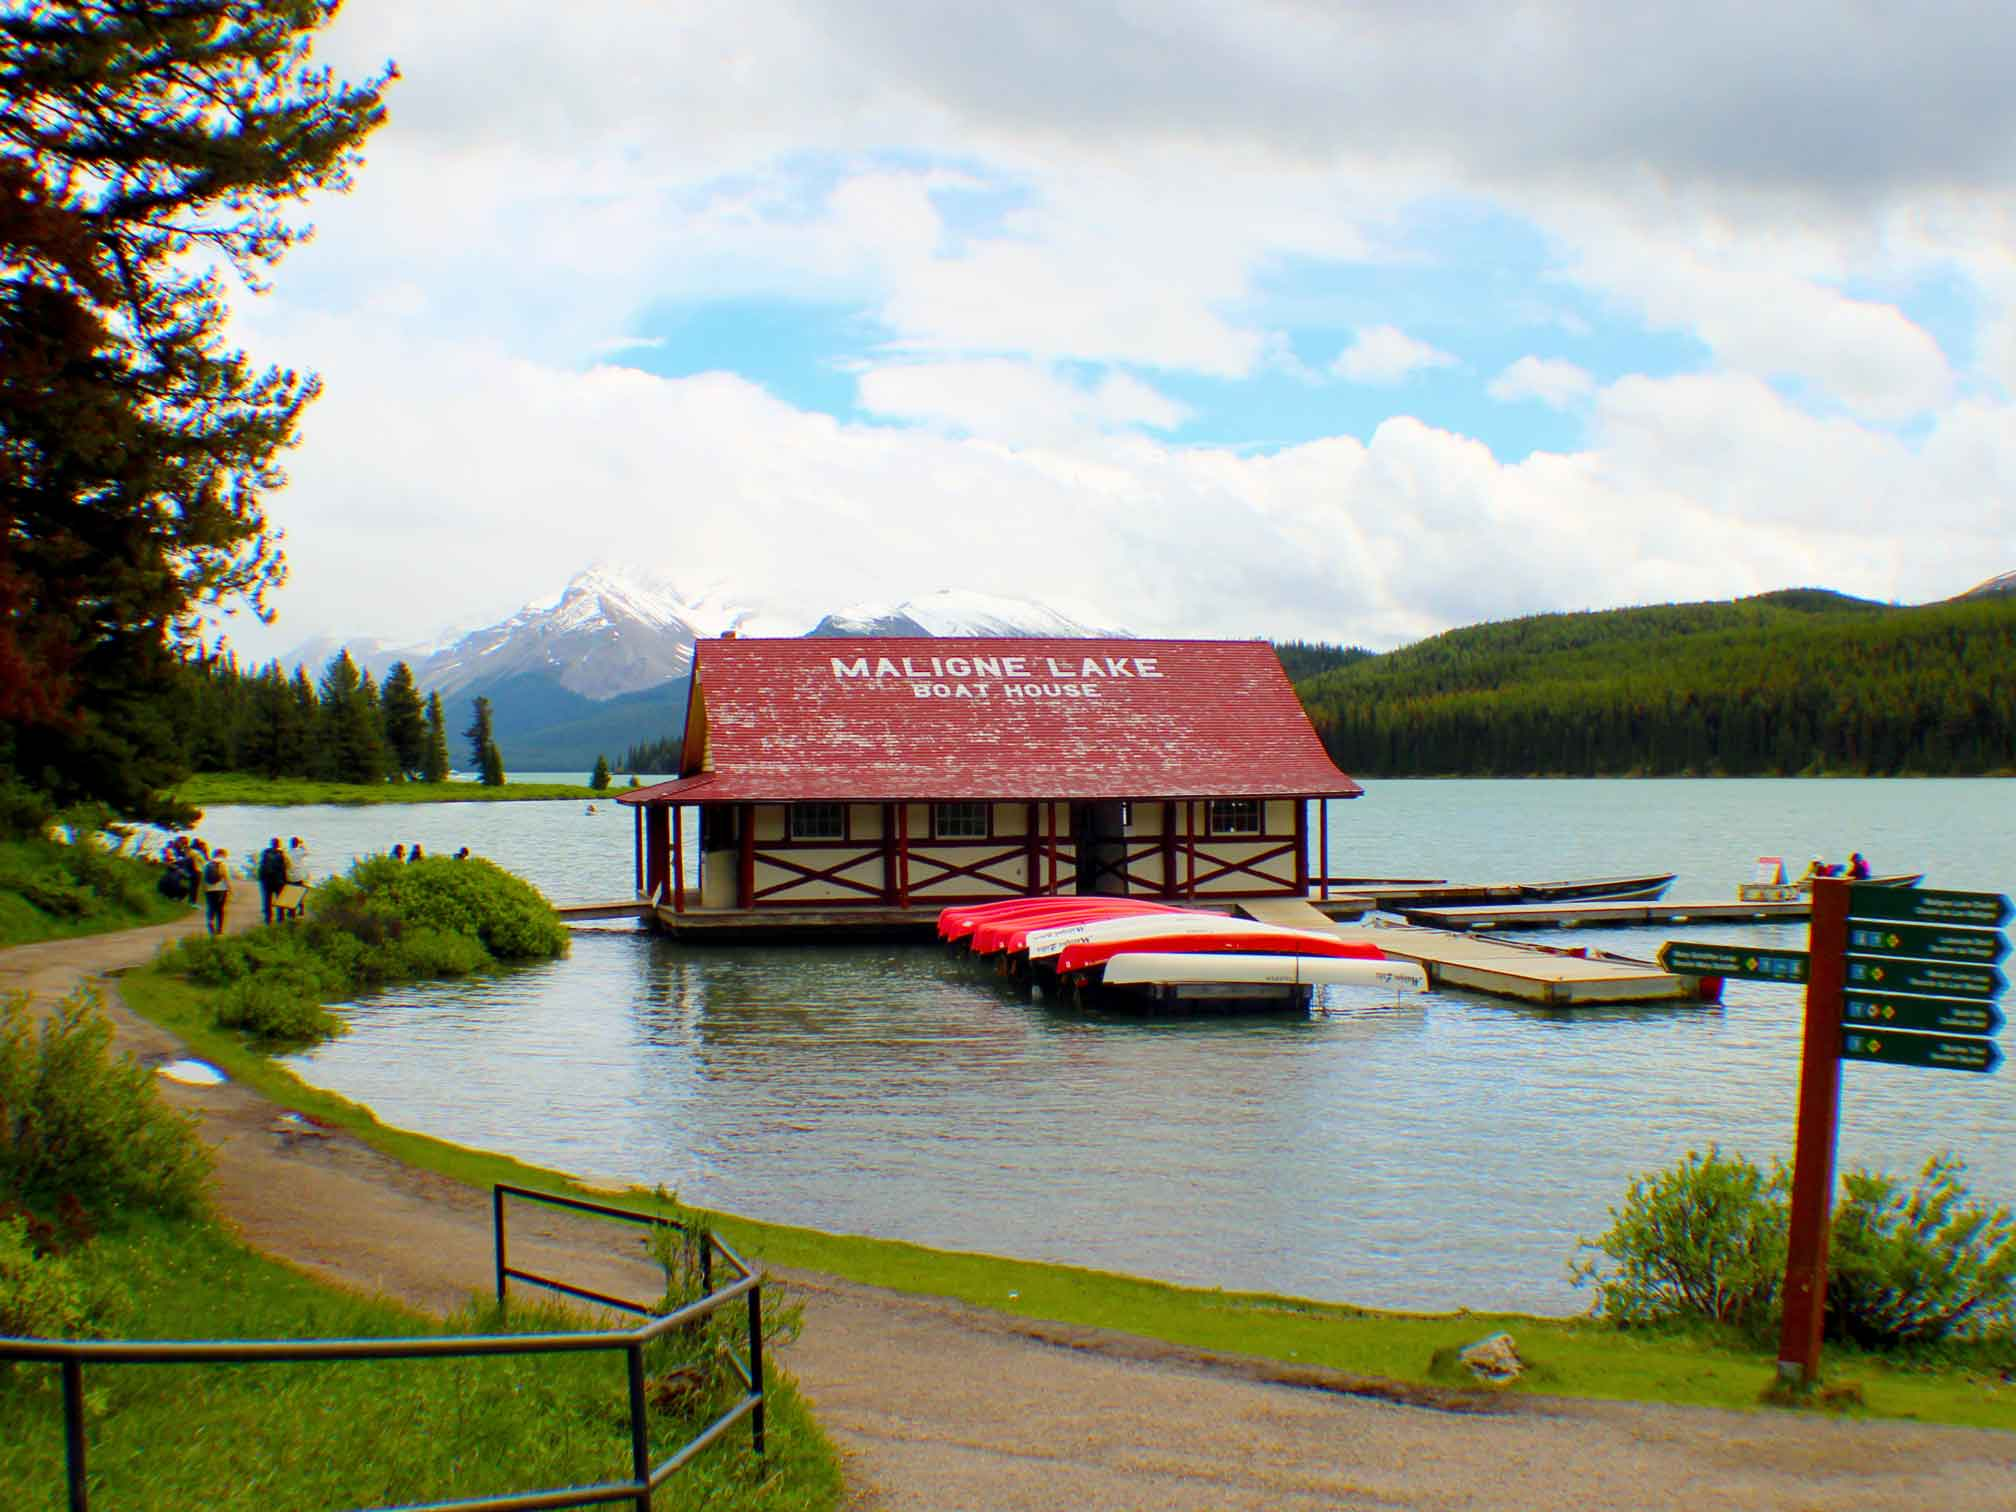 Maligne Lake Boat House